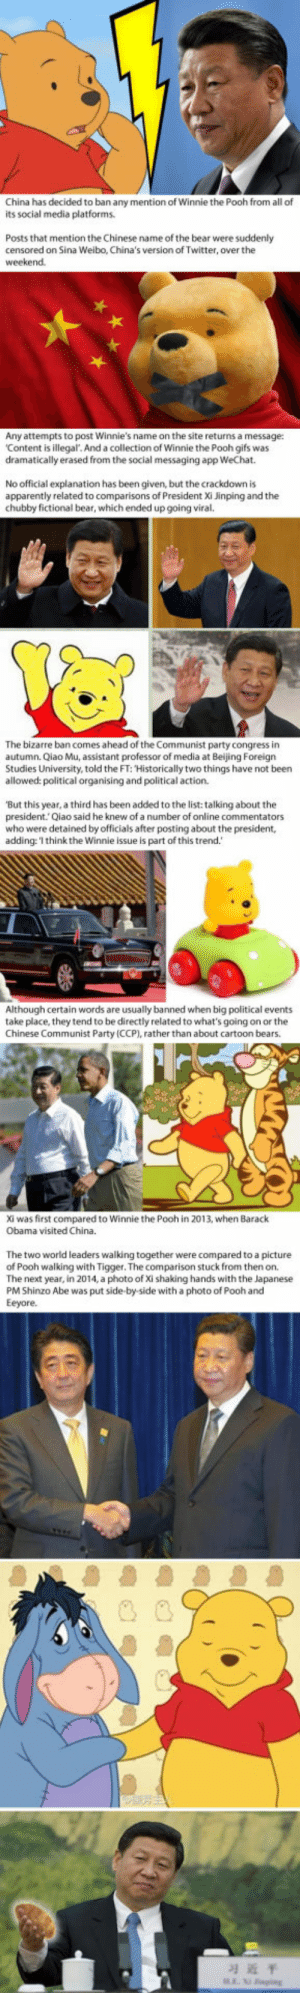 Winnie the Pooh was banned in China for looking too much like Xi Jinping: China has decided to ban any mention of Winnie the Pooh from all of  its social media platforms  Posts that mention the Chinese name of the bear were suddenly  censored on Sina Weibo, China's version of Twitter, over the  Any attempts to post Winnie's name on the site returns a message:  Content is illegal. And a collection of Winnie the Pooh gifs was  dramatically erased from the social messaging app WeChat  No official explanation has been given, but the crackdown is  apparently related to comparisons of President Xi Jinping and the  chubby fictional bear, which ended up going viral.  The bizarre ban comes ahead of the Communist party congress in  autumn. Qiao Mu, assistant professor of media at Beijing Foreign  Studies University, told the FT: Historically two things have not been  allowed: political organising and political action  'But this year, a third has been added to the list: talking about the  president.Qiao said he knew of a number of online commentators  who were detained by officials after posting about the president,  adding:'I think the Winnie issue is part of this trend.  Although certain words are usually banned when big political events  take place, they tend to be directly related to what's going on or the  Chinese Communist Party (CCP), rather than about cartoon bears.  Xi was first compared to Winnie the Pooh in 2013, when Barack  Obama visited China.  The two world leaders walking together were compared to a picture  of Pooh walking with Tigger. The comparison stuck from then on.  The next year, in 2014, a photo of Xi shaking hands with the Japanese  PM Shinzo Abe was put side-by-side with a photo of Pooh and  Eeyore.  习近平 Winnie the Pooh was banned in China for looking too much like Xi Jinping